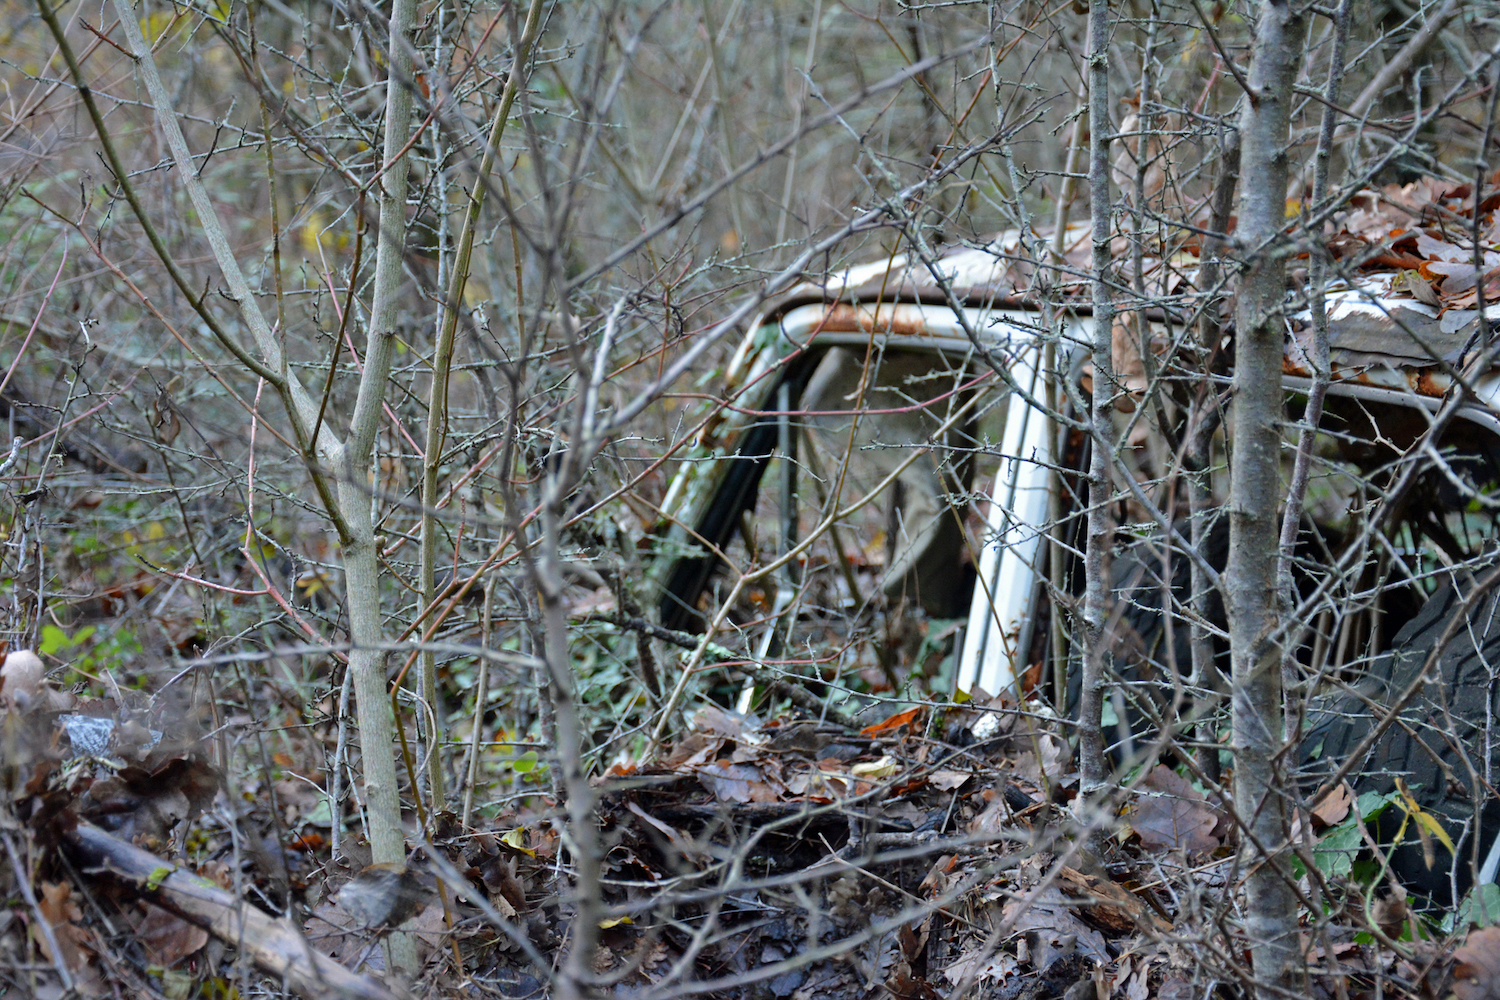 abandoned old car buried